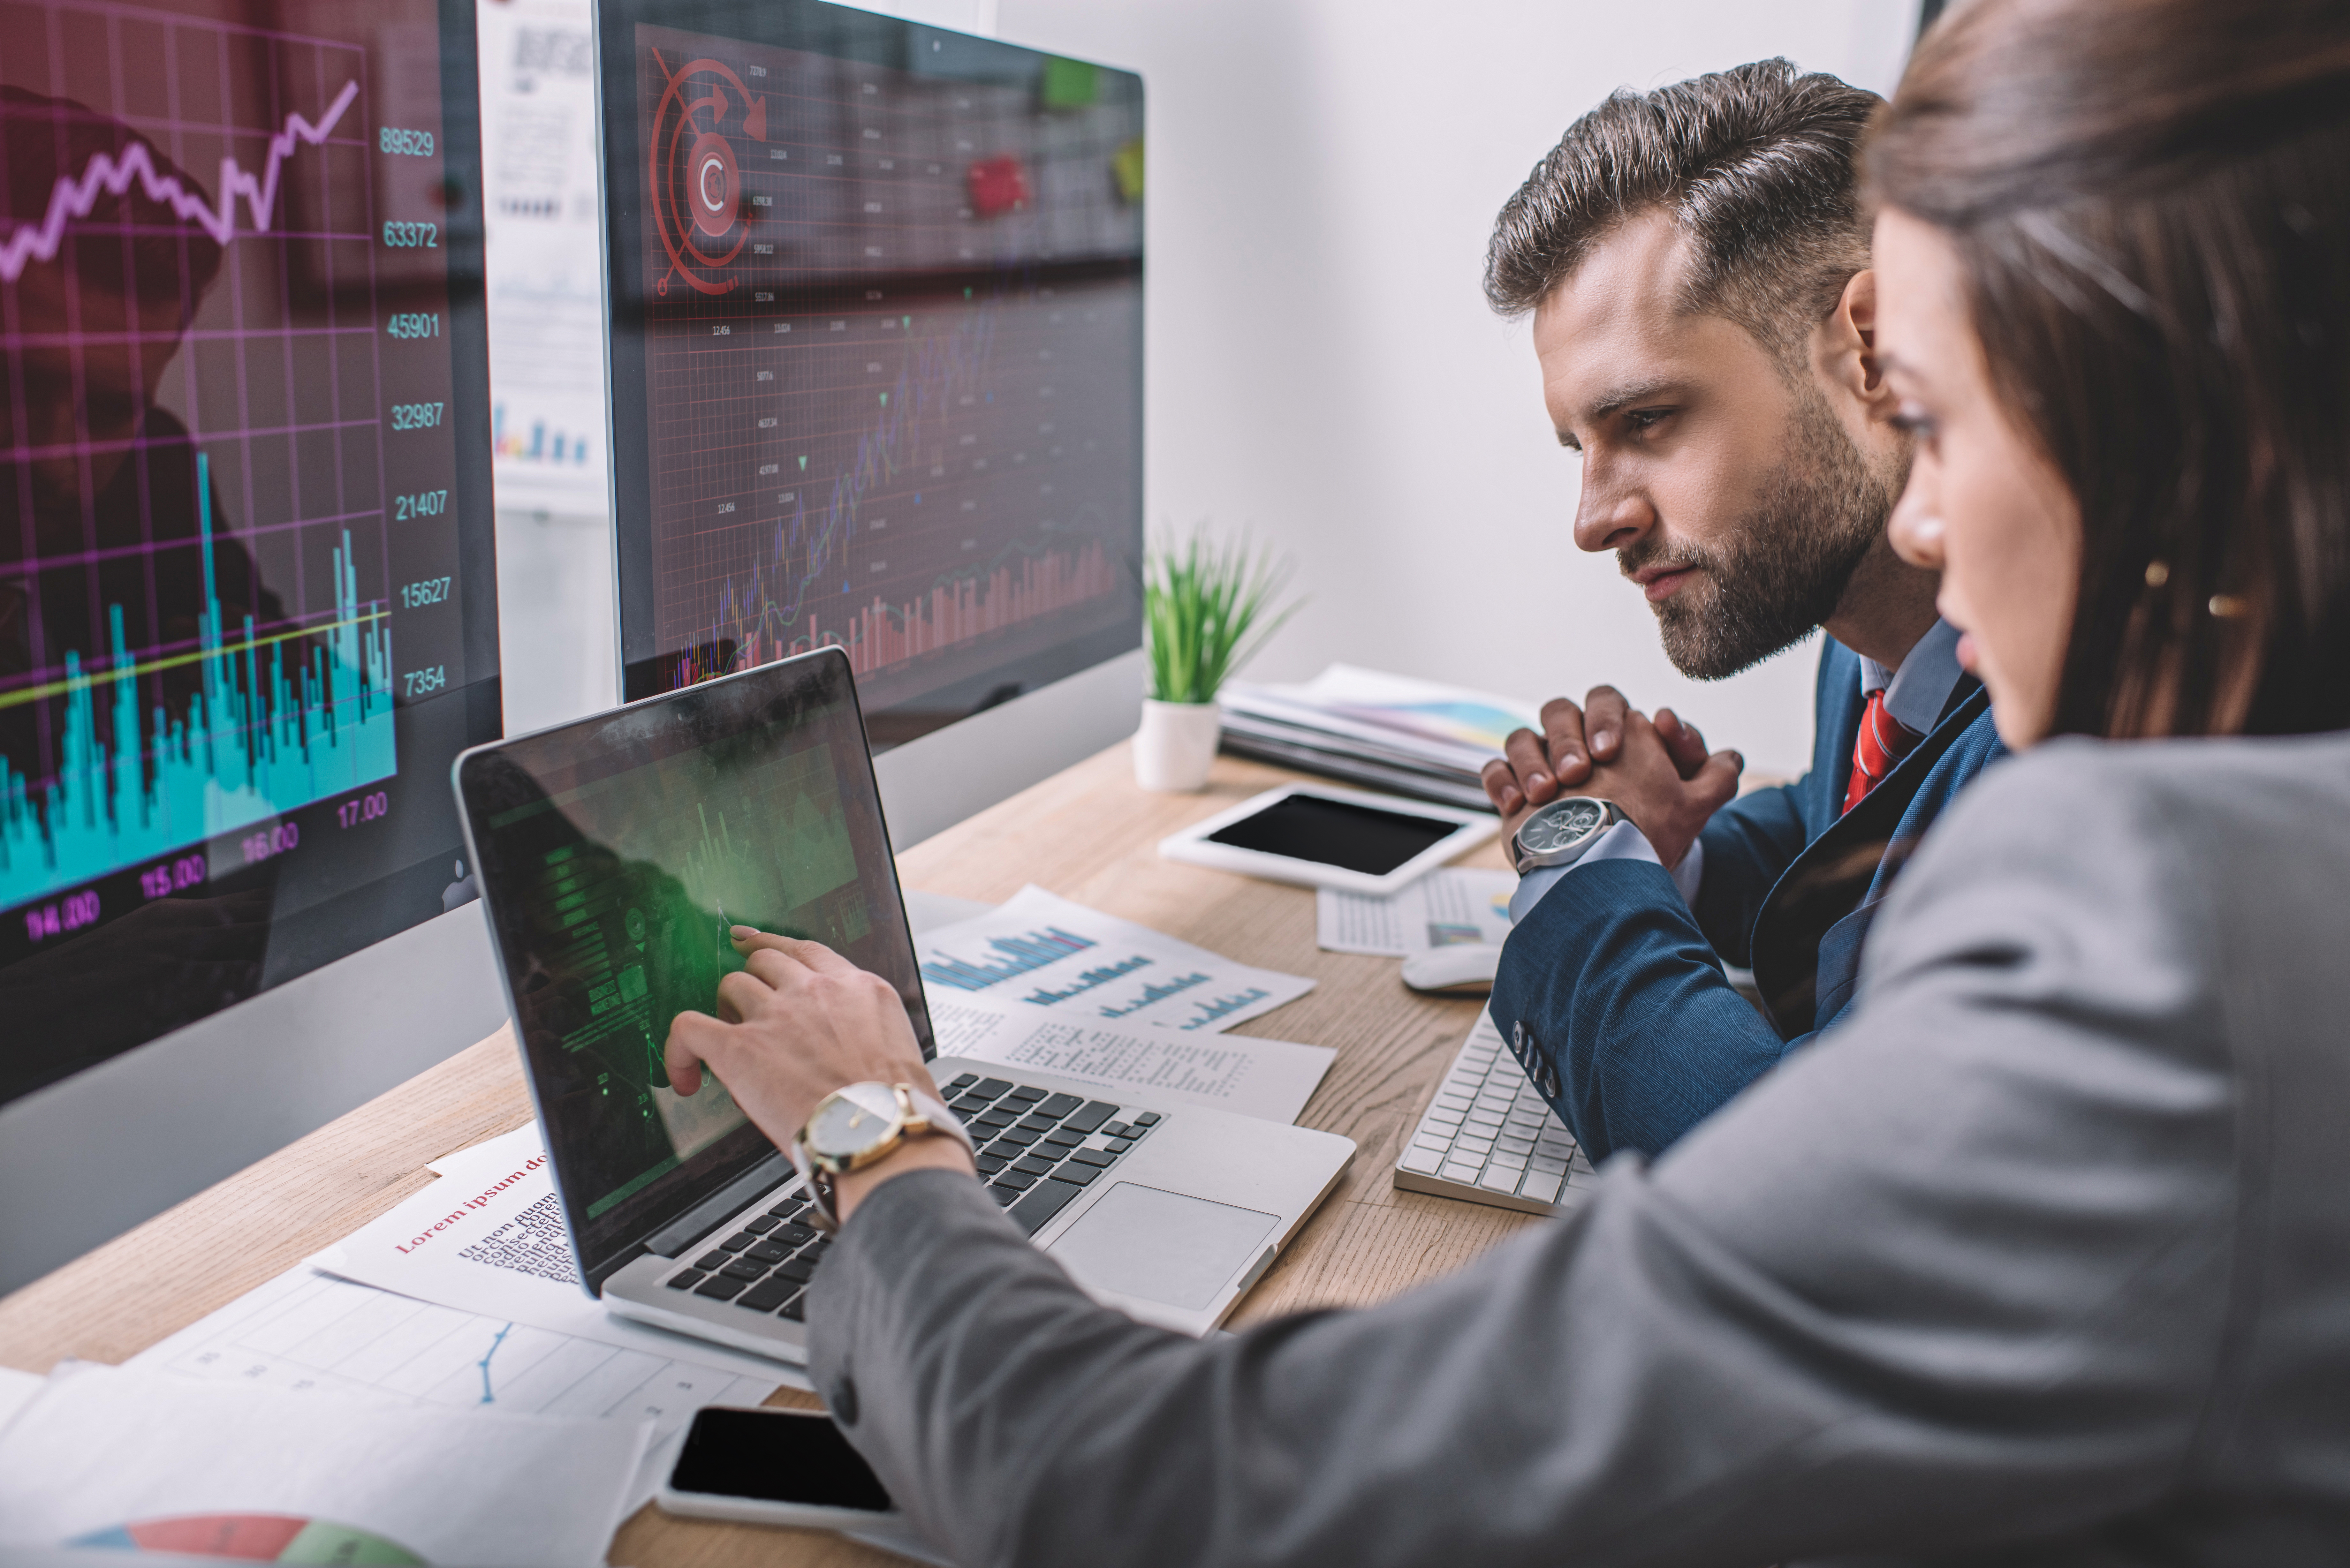 Side view of computer systems analysts using charts on computer monitors while working in office